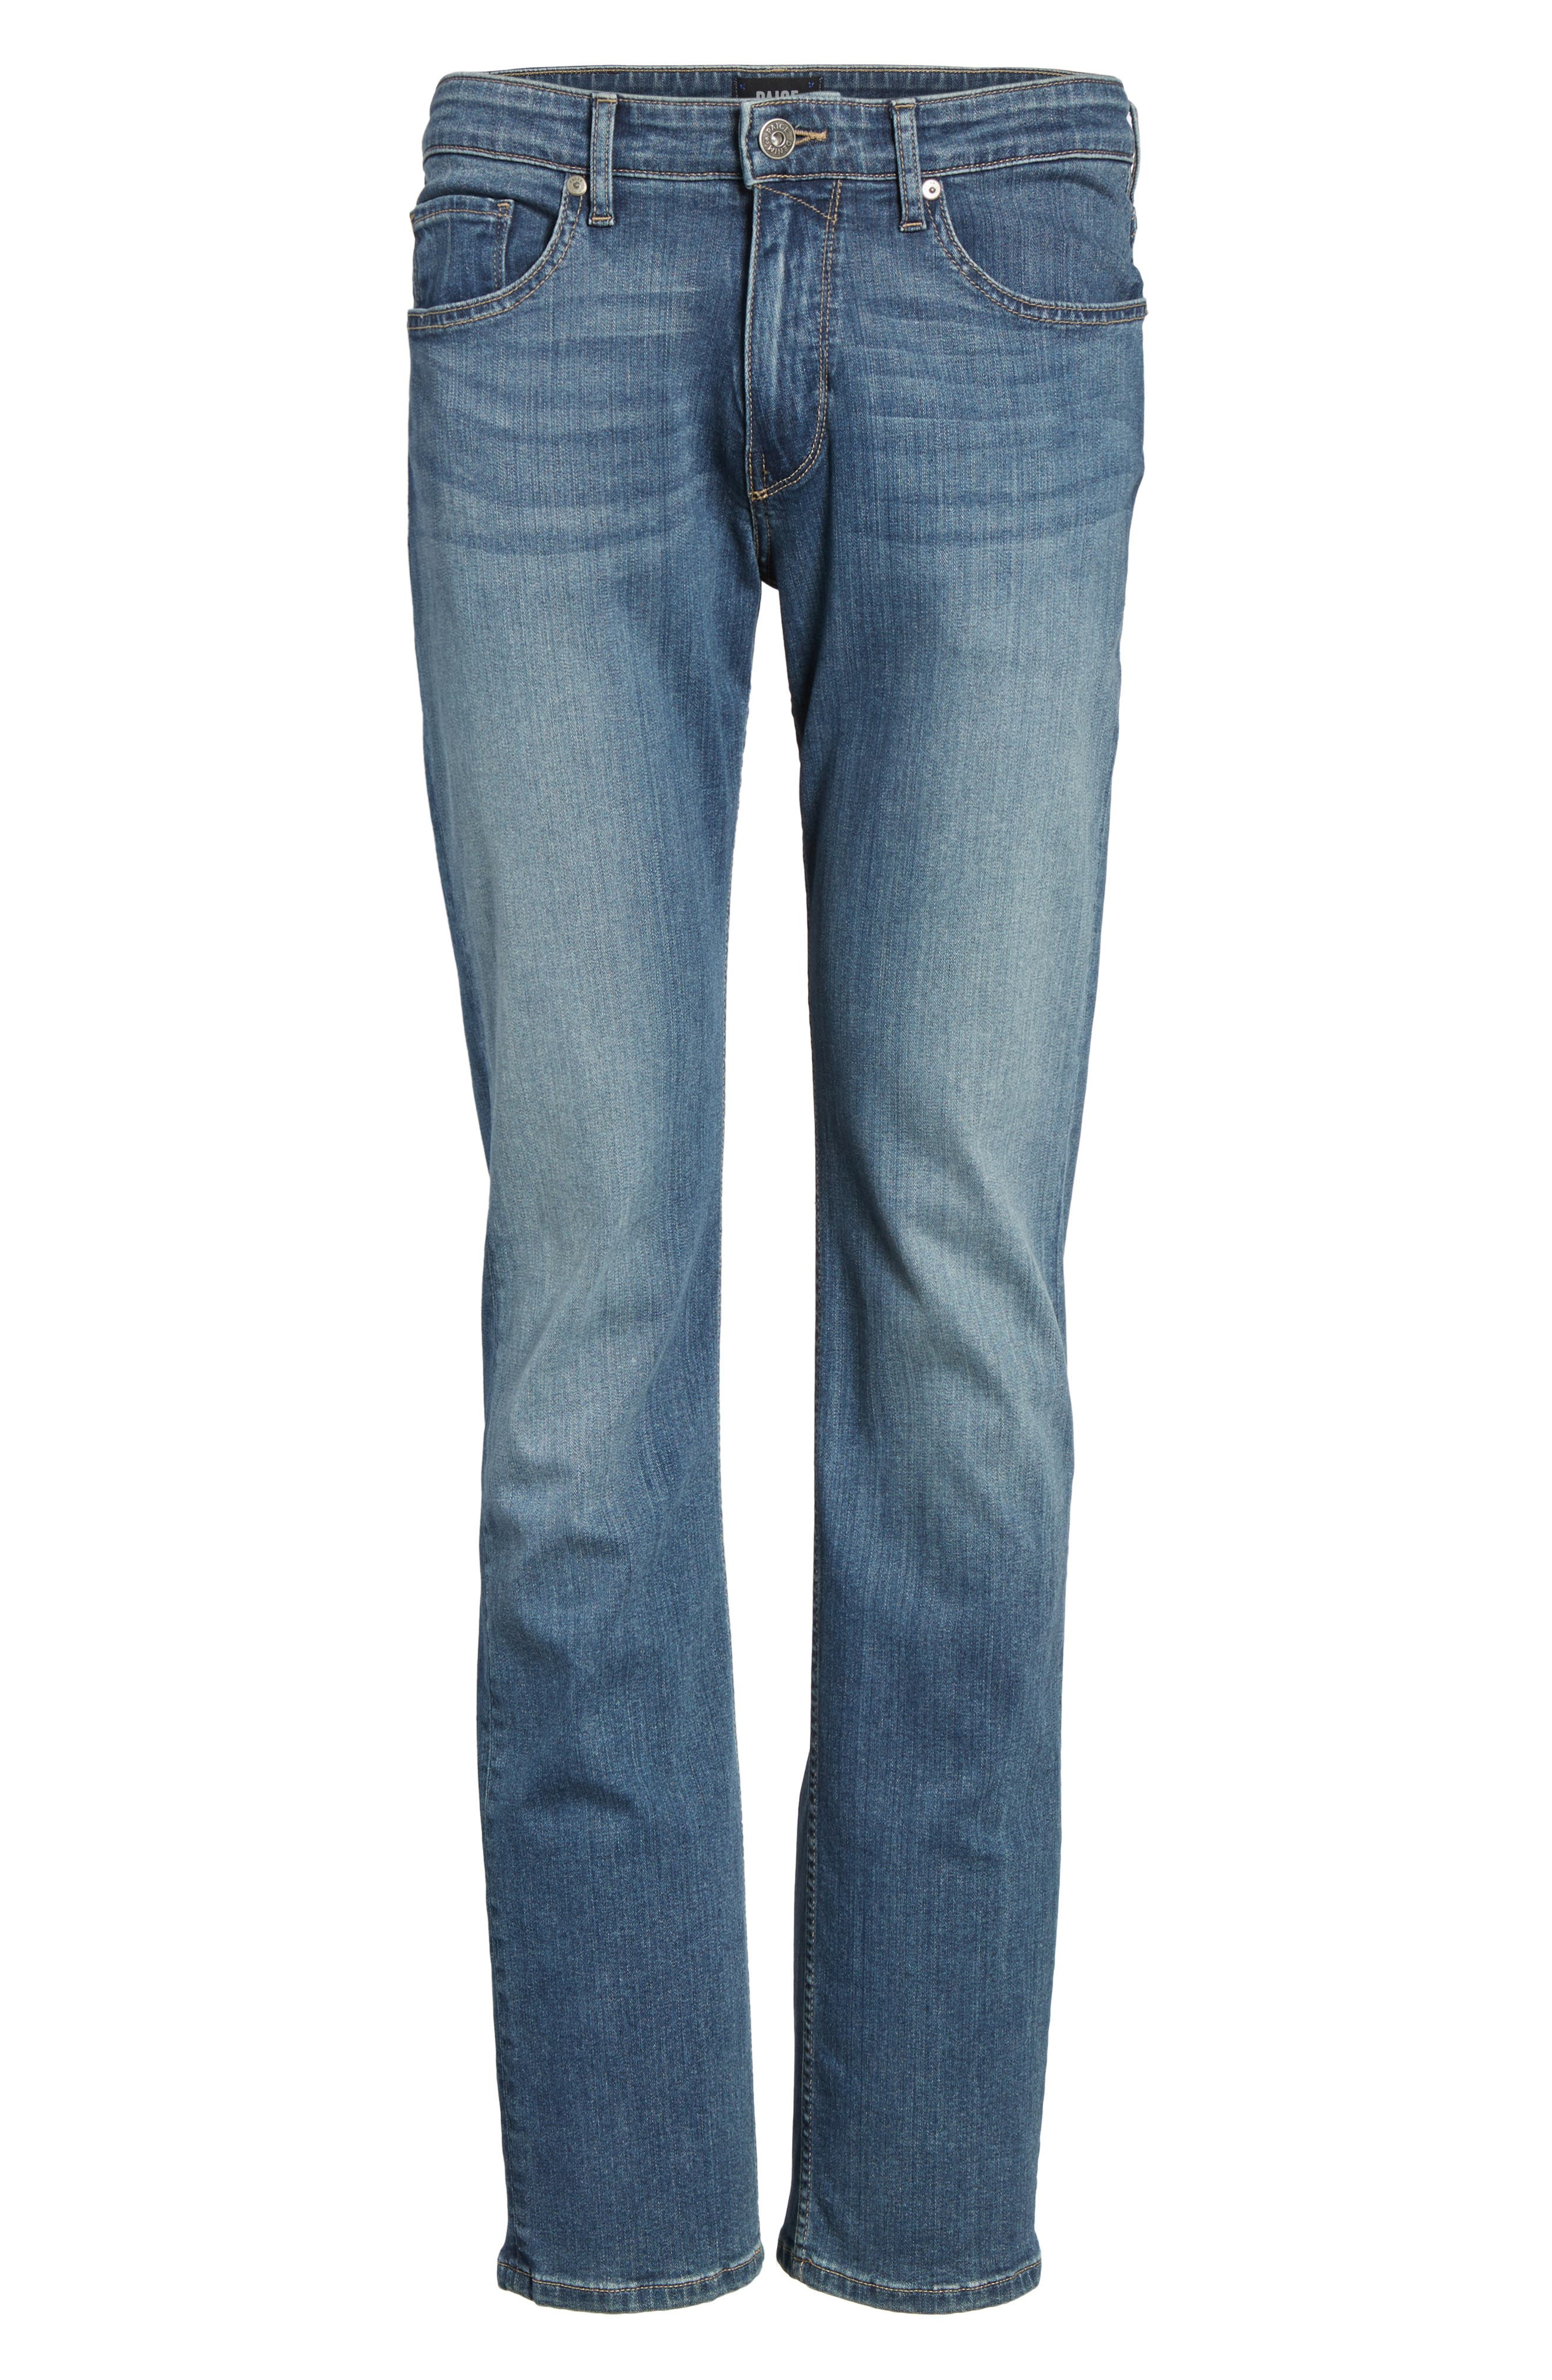 PAIGE,                             Normandie Straight Fit Jeans,                             Alternate thumbnail 6, color,                             ALMONT